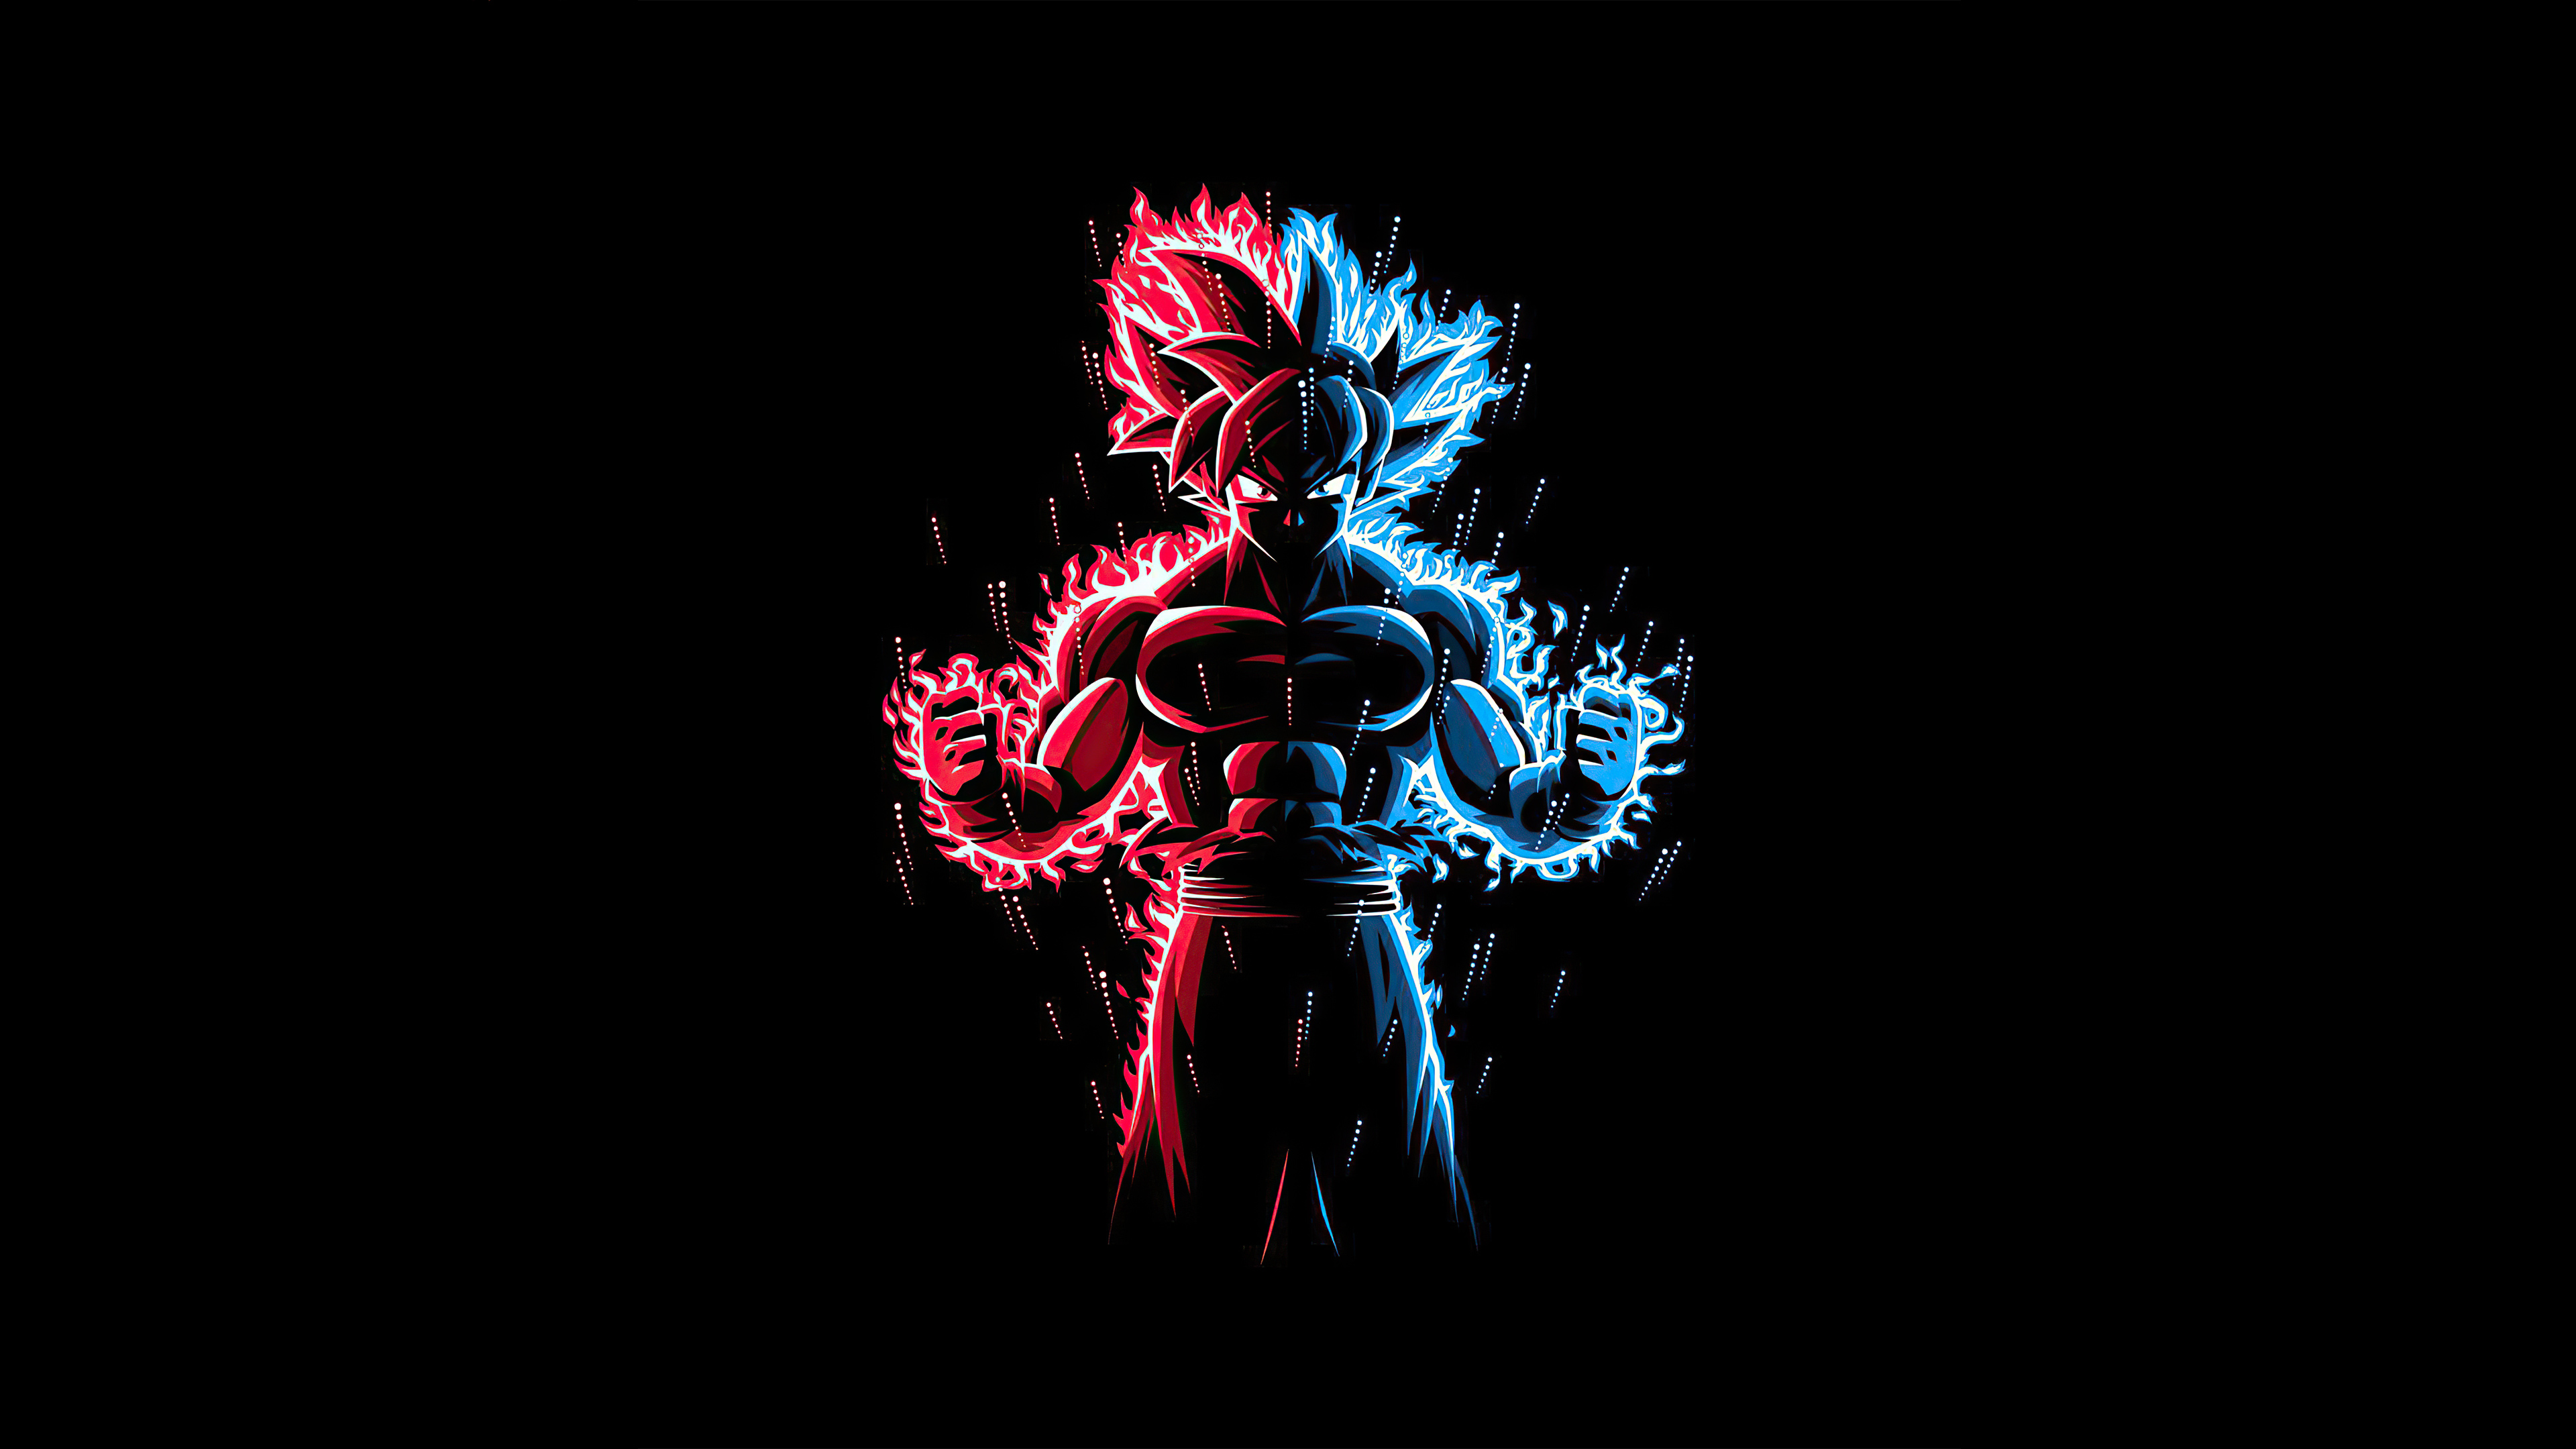 God Red Blue Goku Dragon Ball Z Hd Anime 4k Wallpapers Images Backgrounds Photos And Pictures